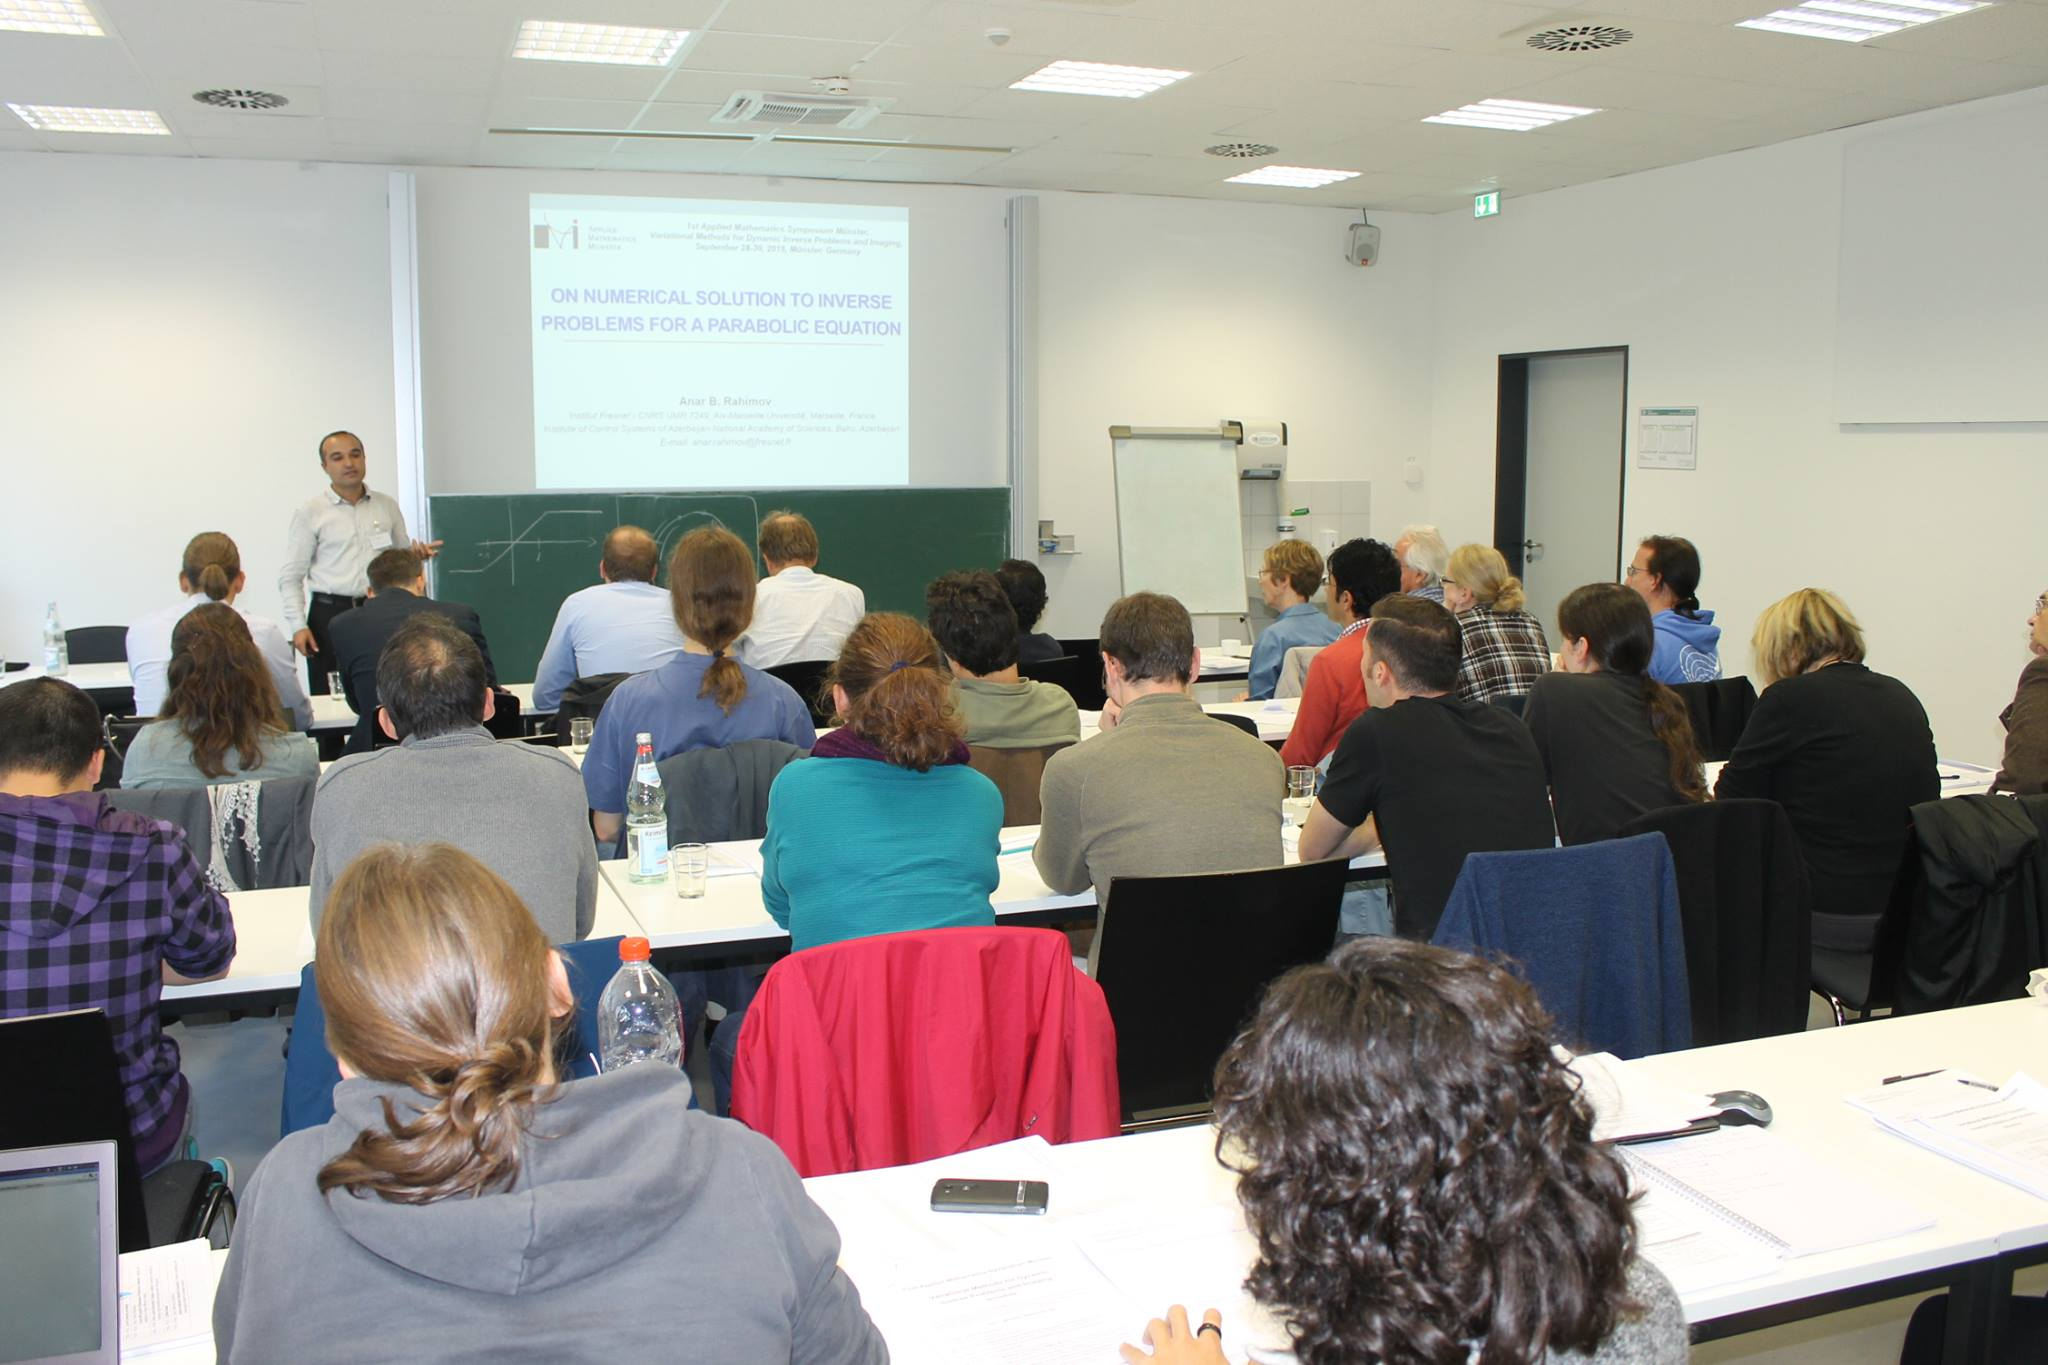 Young researcher of ICS attended the International Conferences and the Summer School on Inverse Problems in Germany